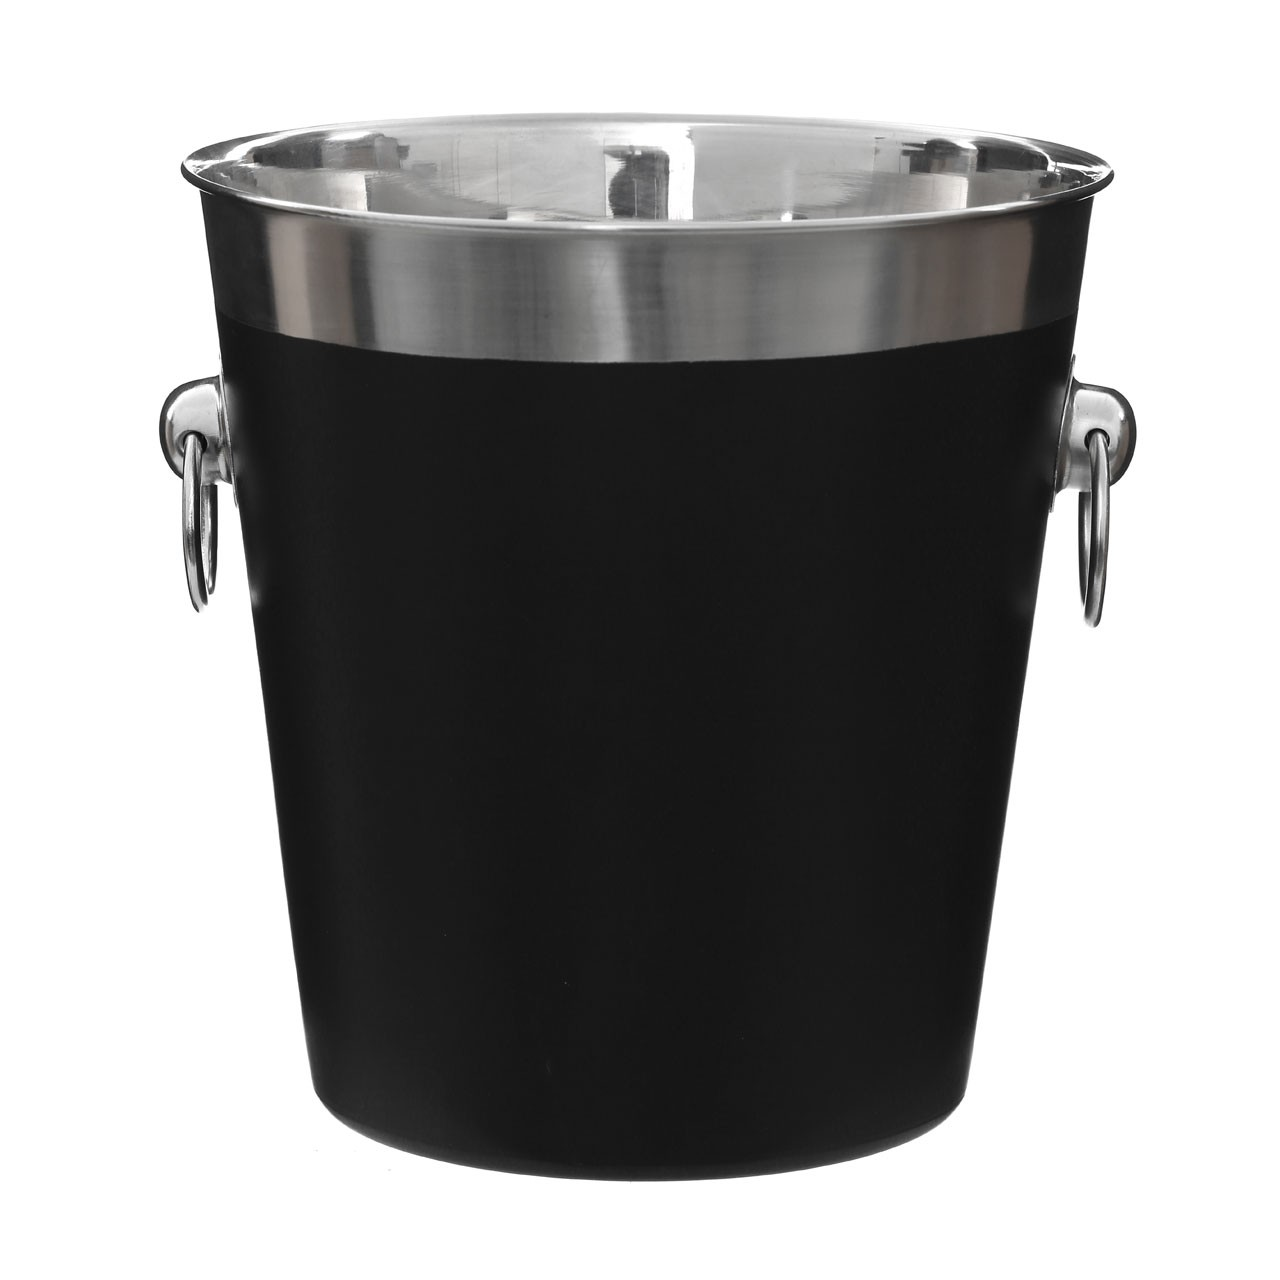 Prime Furnishing Champagne Bucket, Black Enamel